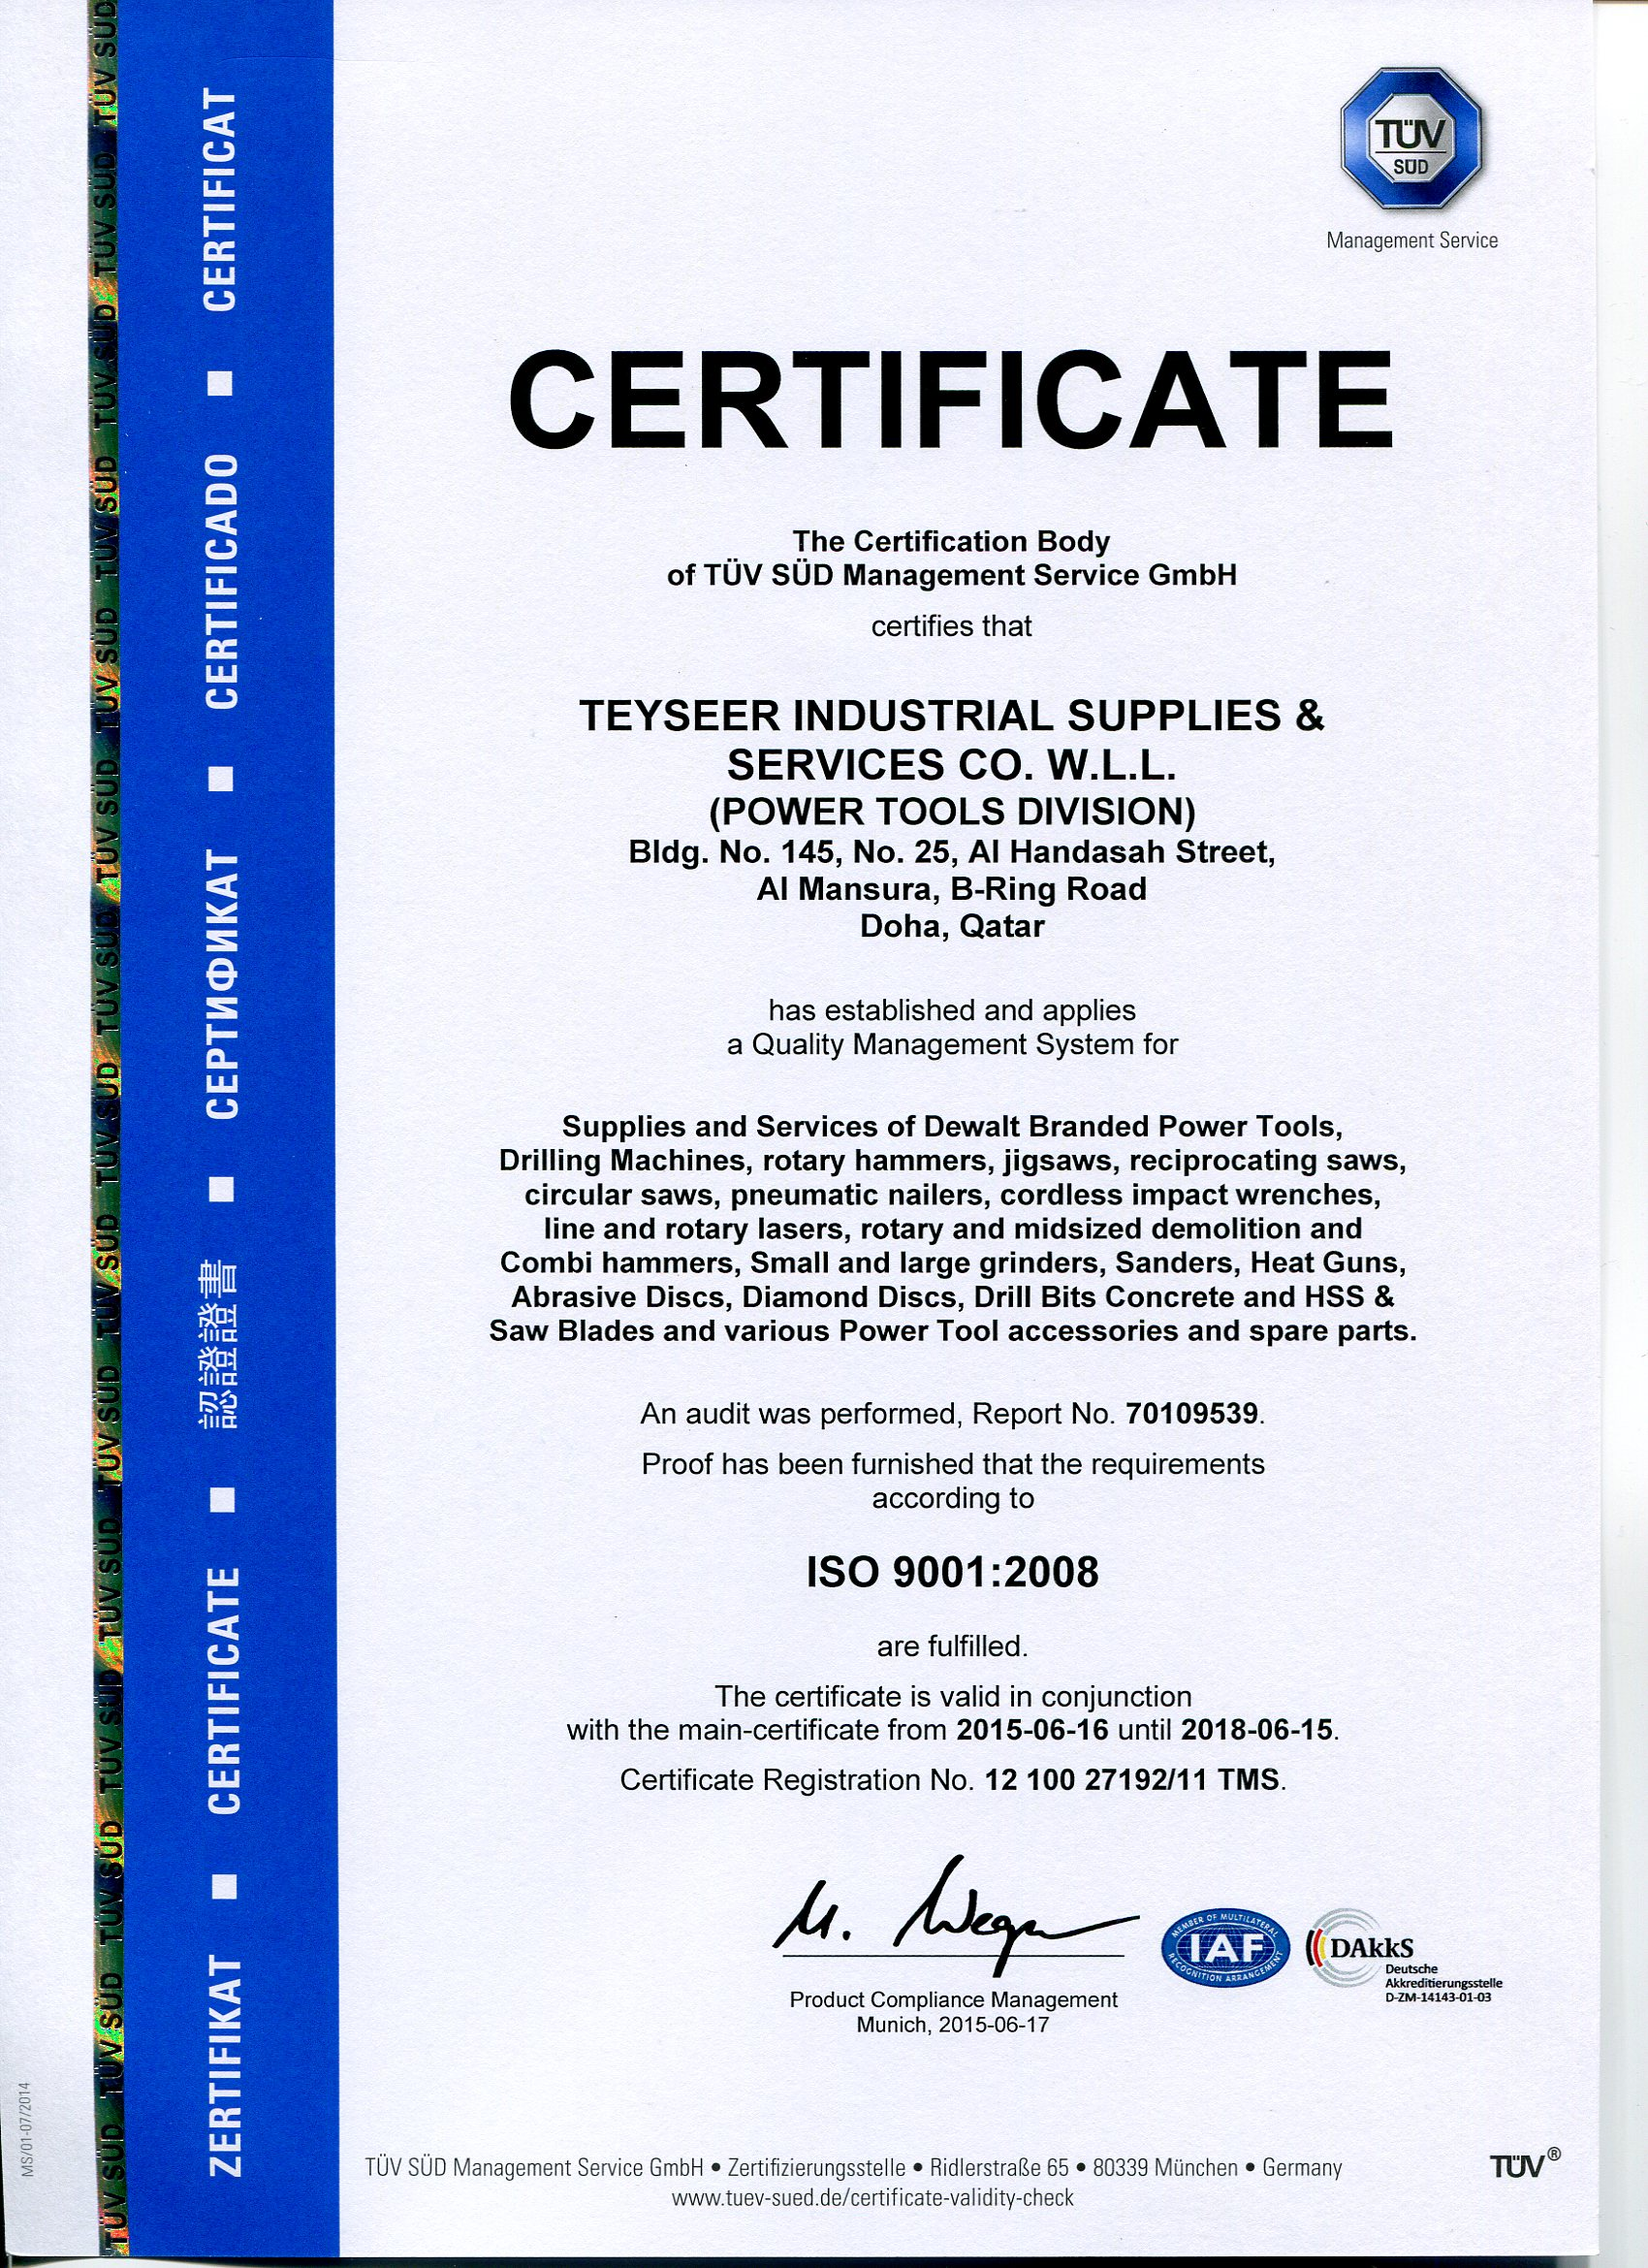 Teyseer Industrial Supplies & Services Co  W L L